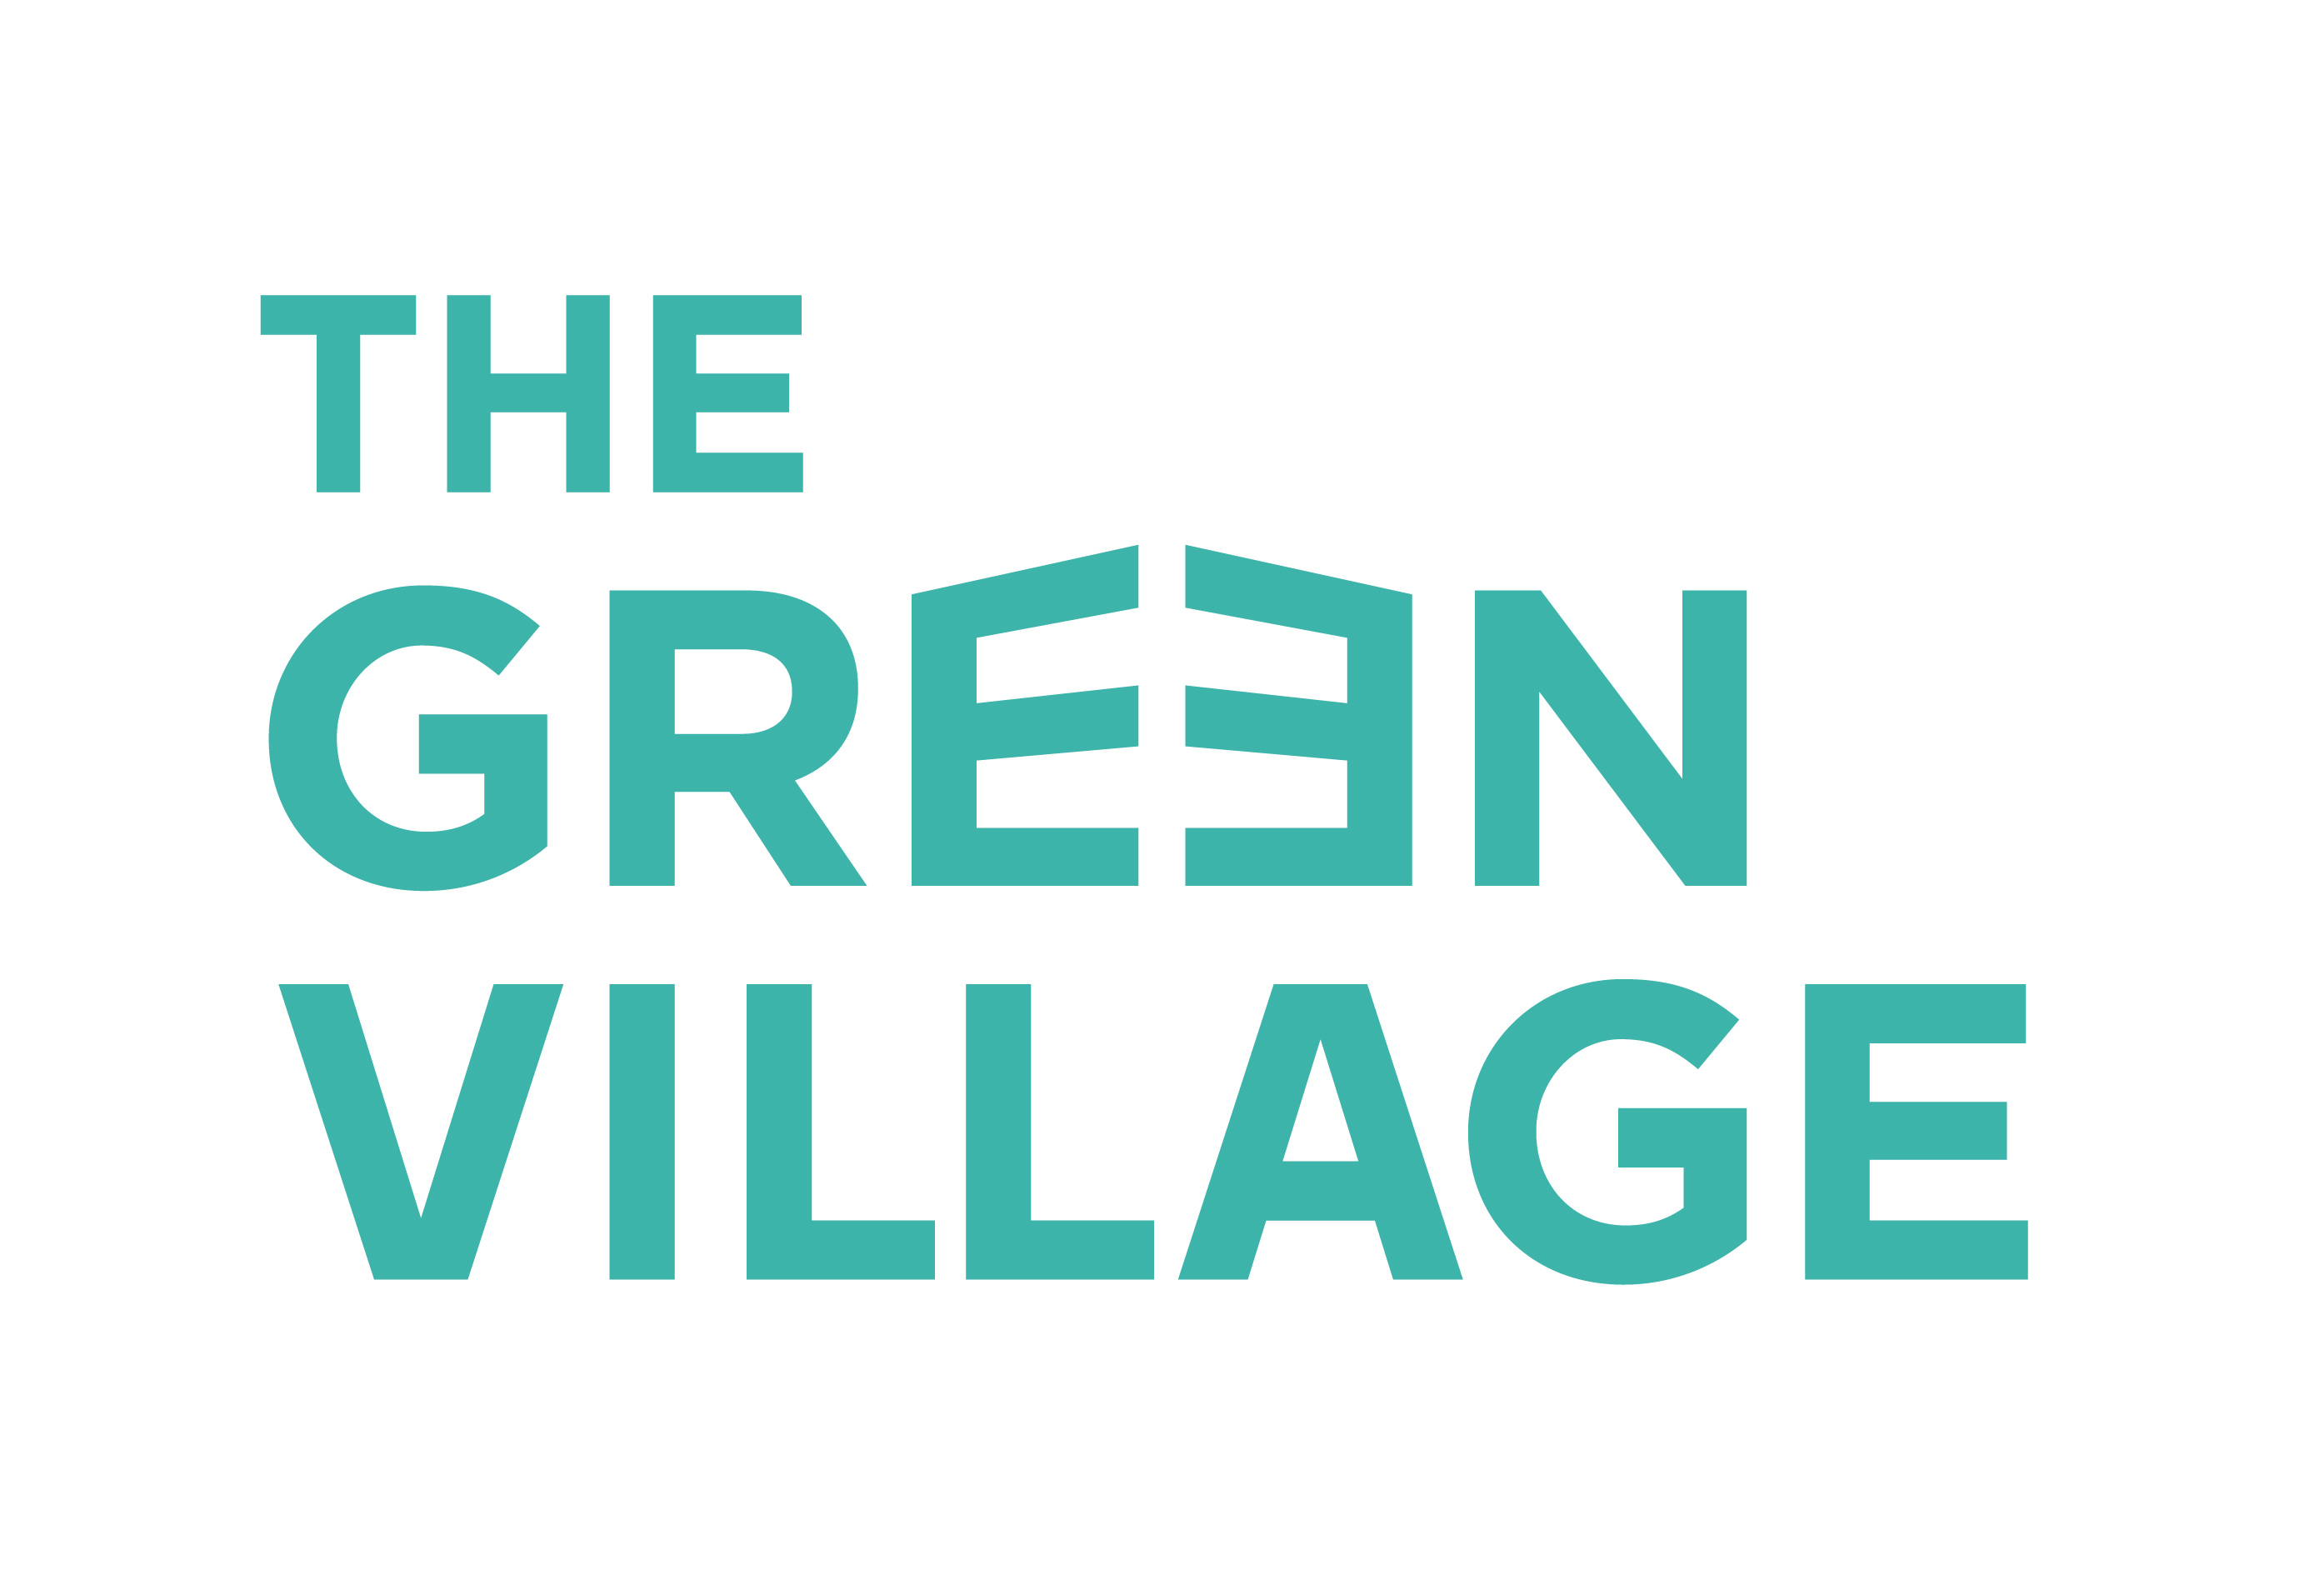 Green Village Logo-aquafresh